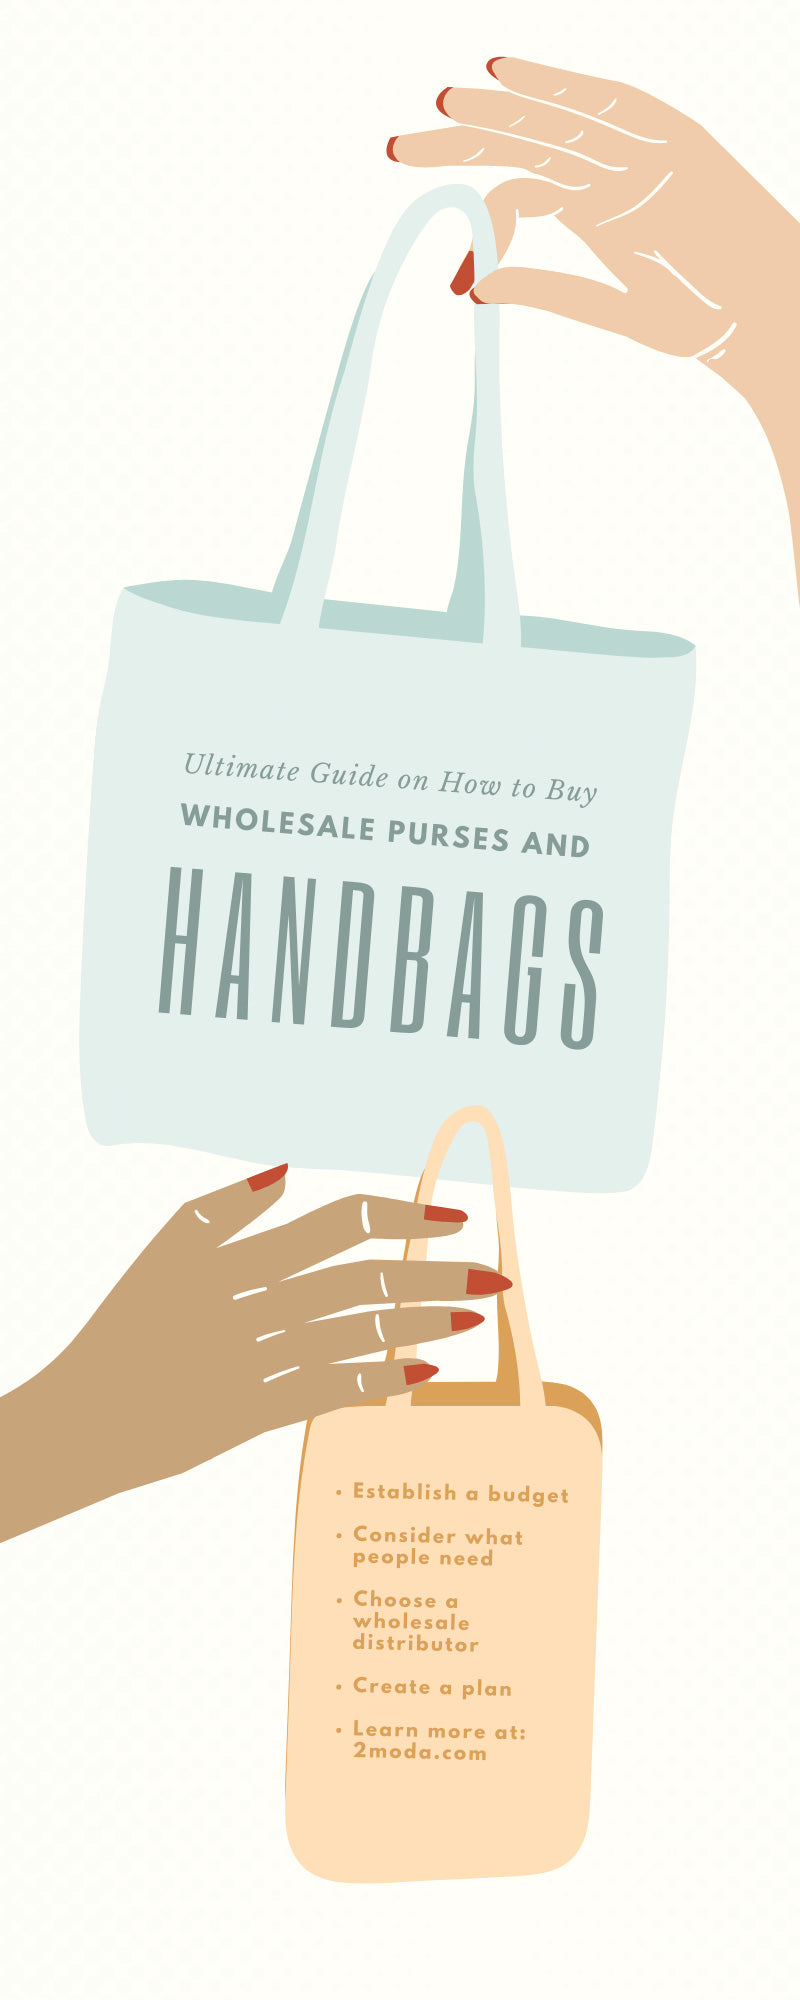 Ultimate Guide on How to Buy Wholesale Purses and Handbags